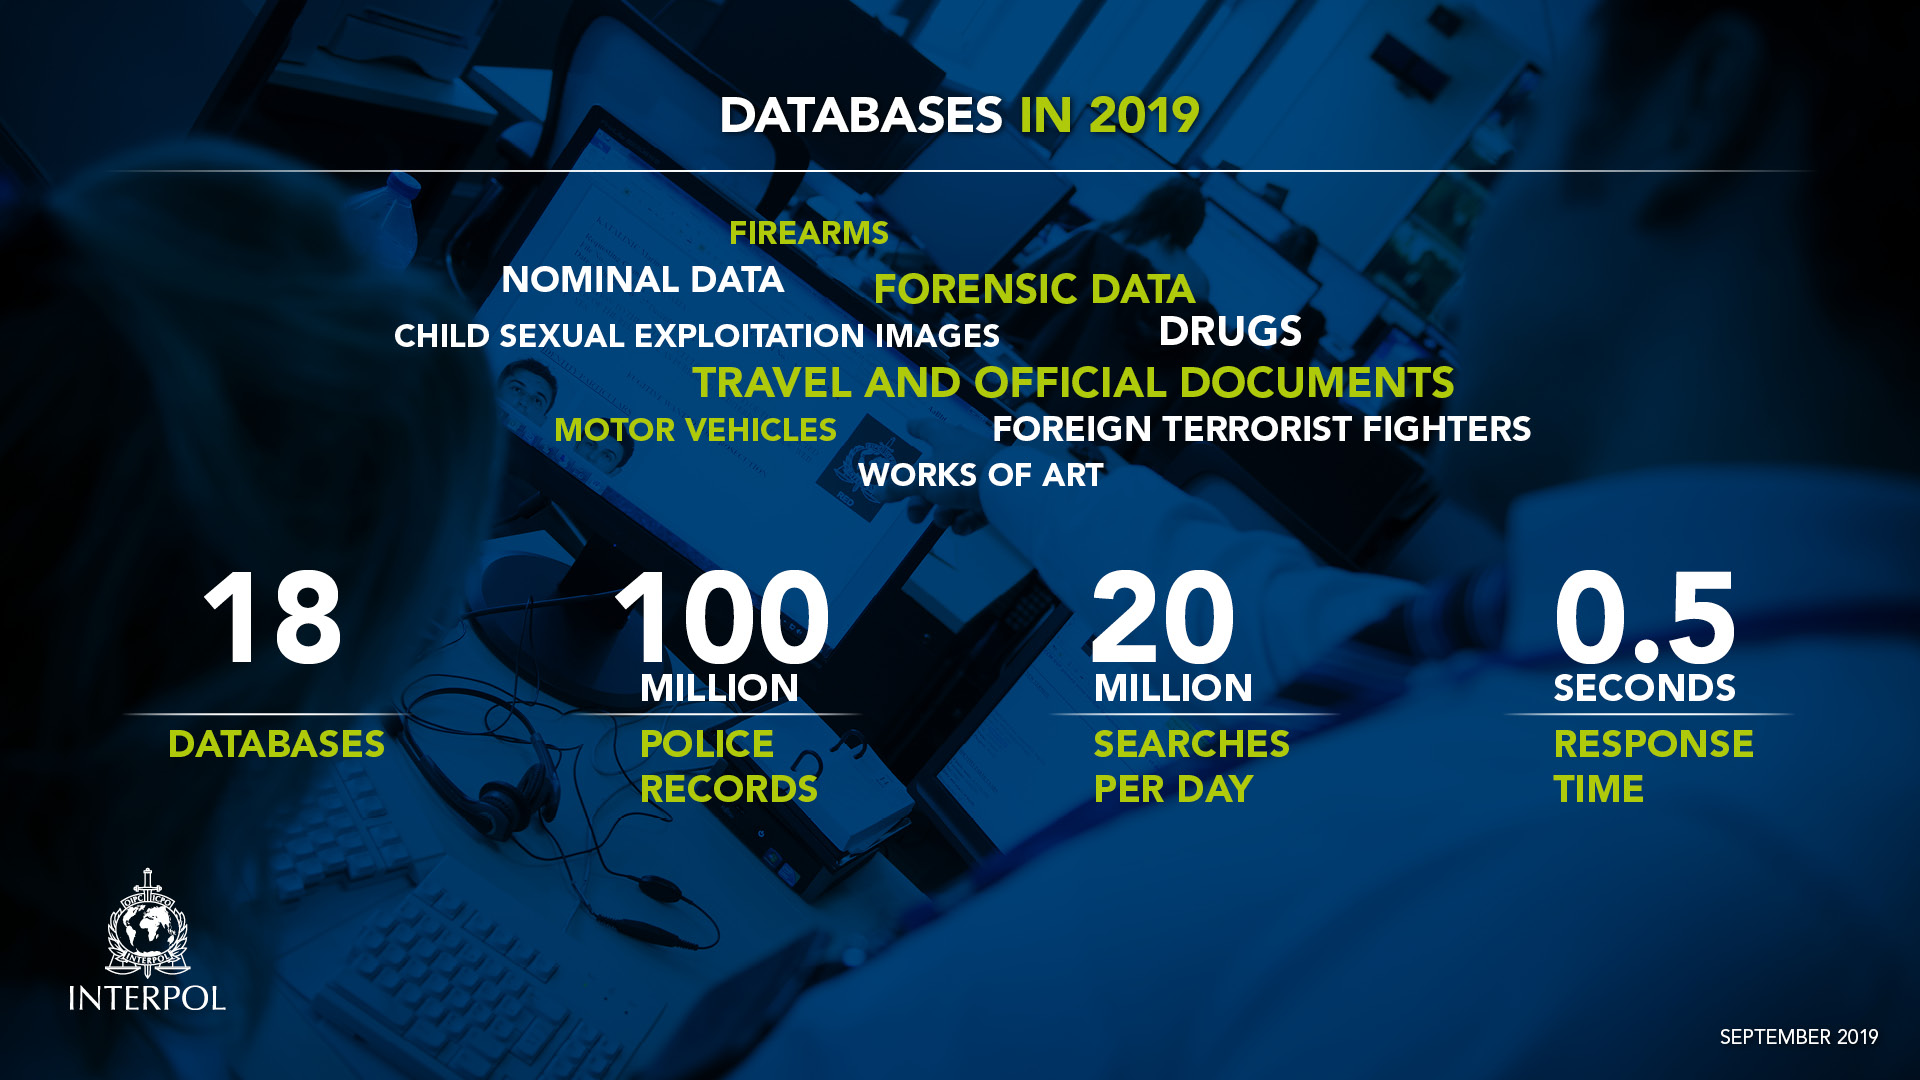 INTERPOL databases in 2019